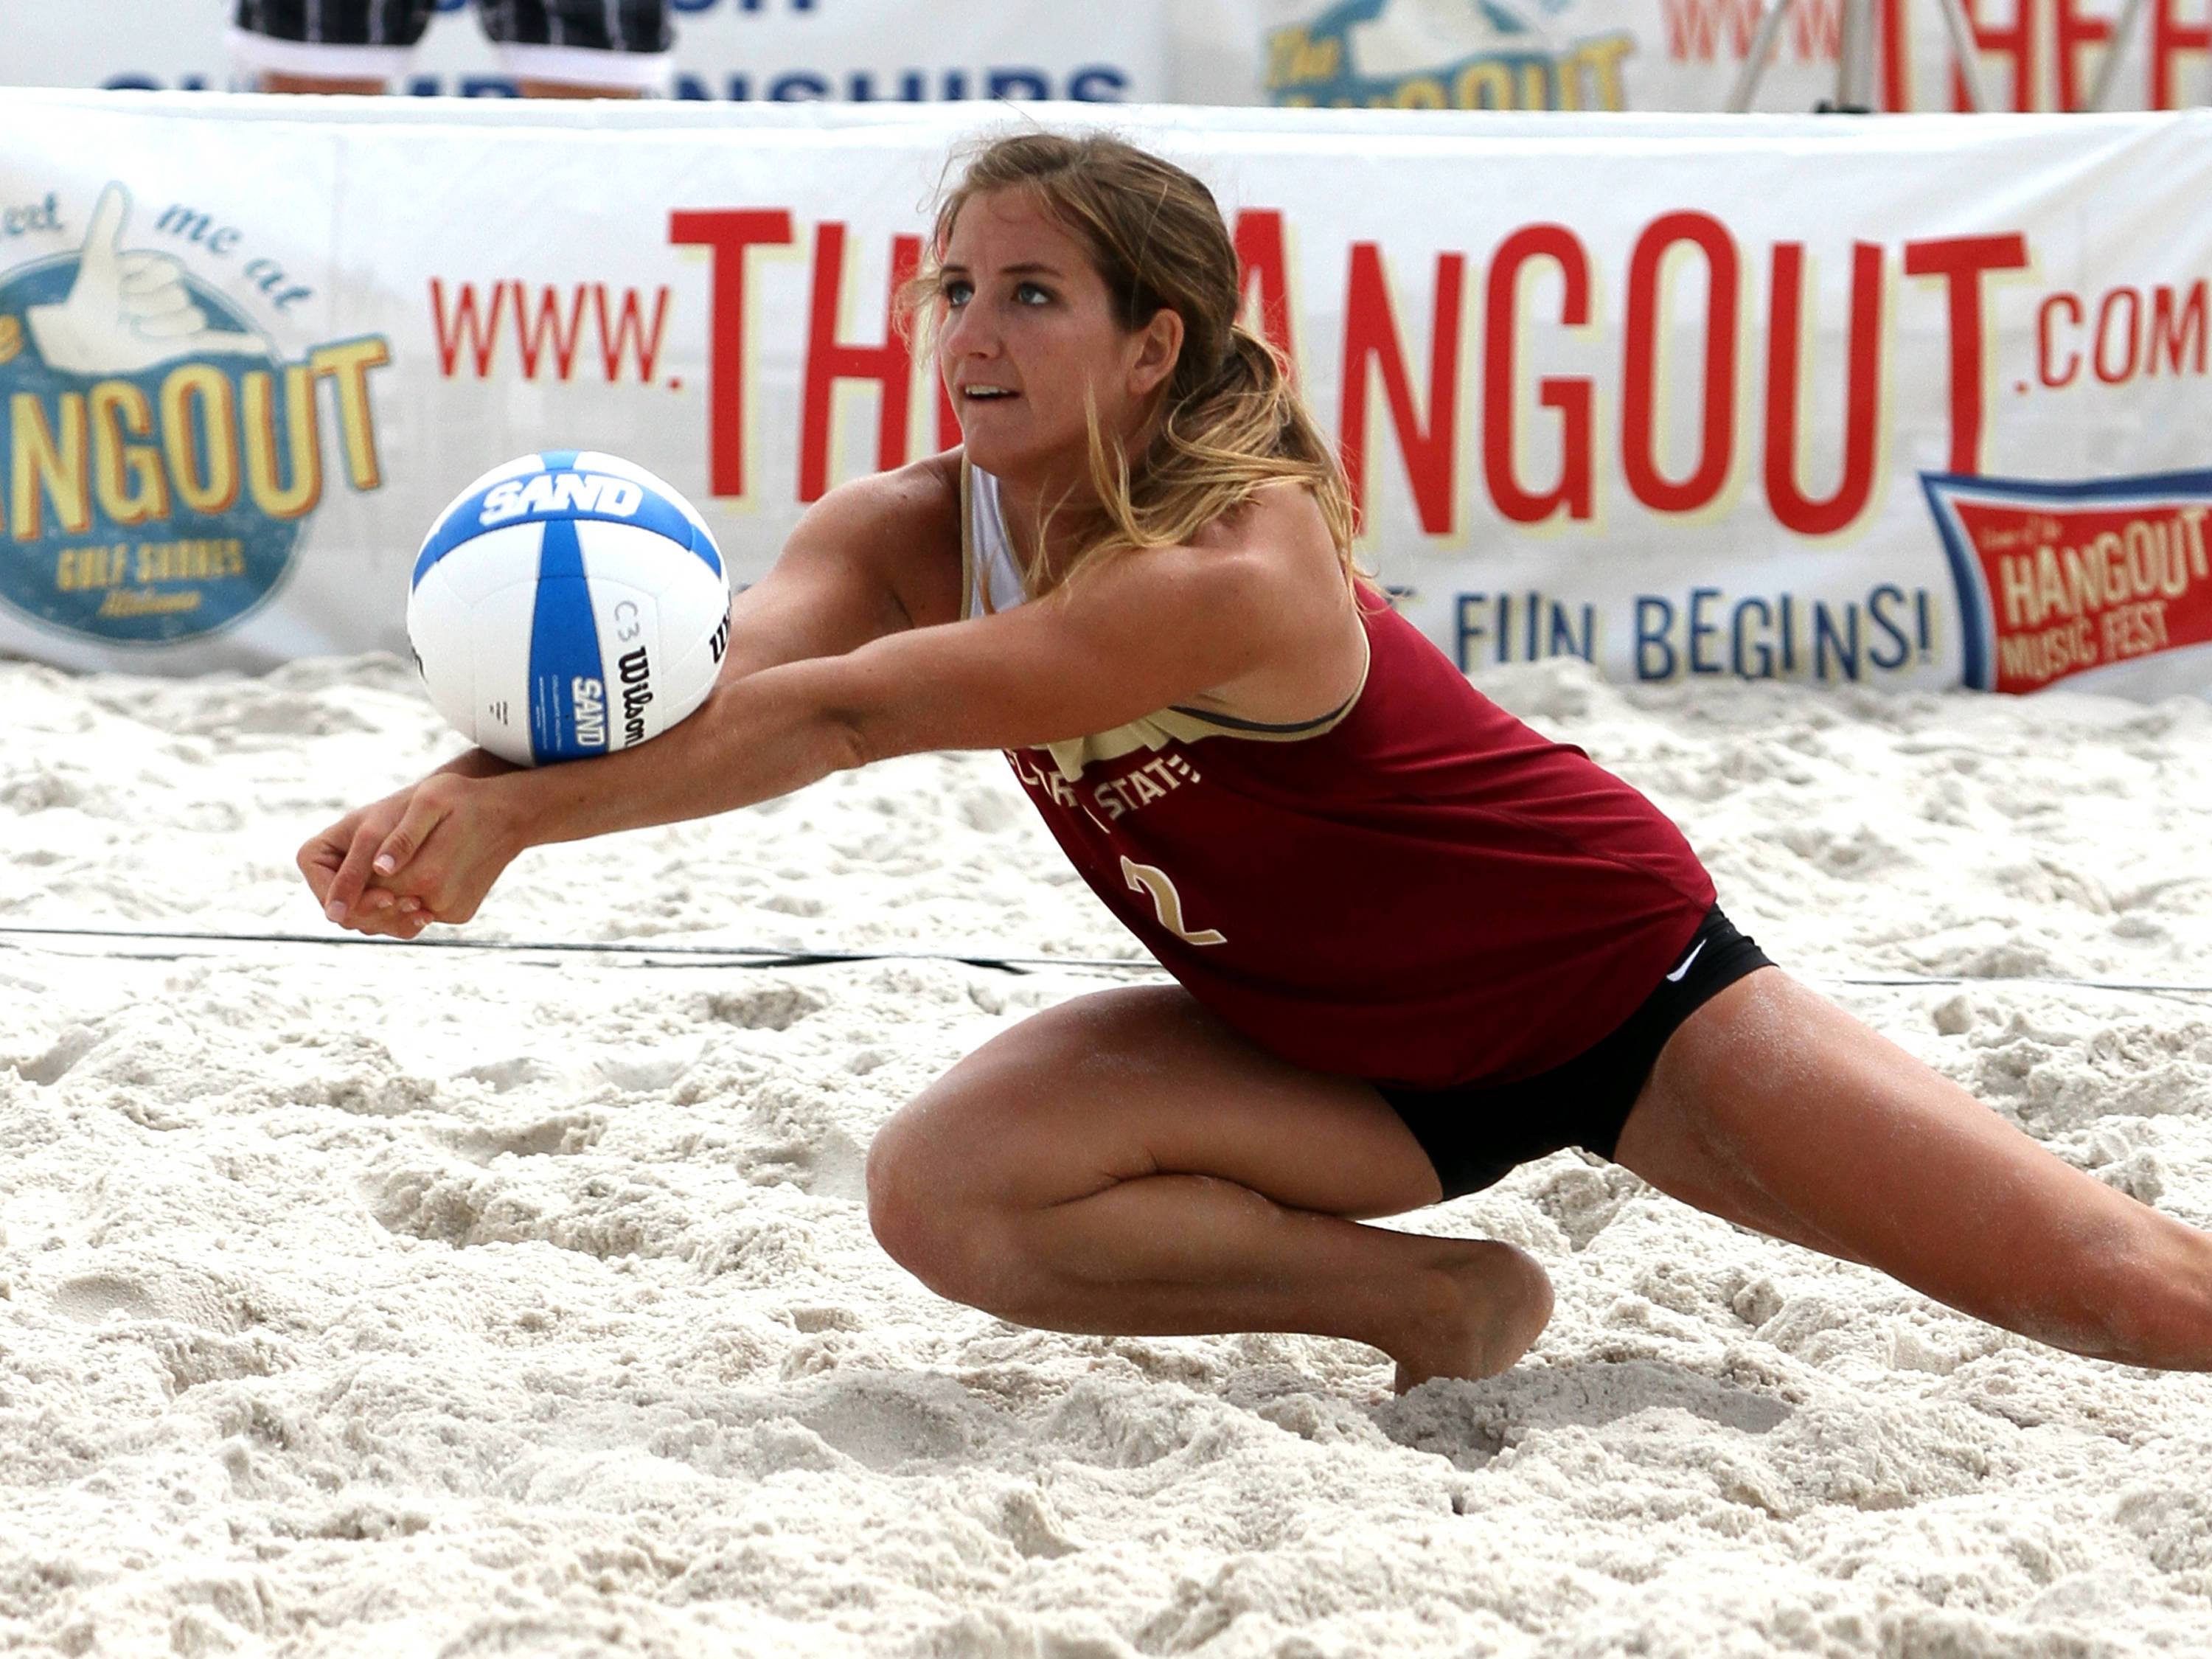 Aurora Davis (2), AVCA Collegiate Sand Volleyball National Championships,  Gulf Shores, Alabama,05/03/13 . (Photo by Steve Musco)